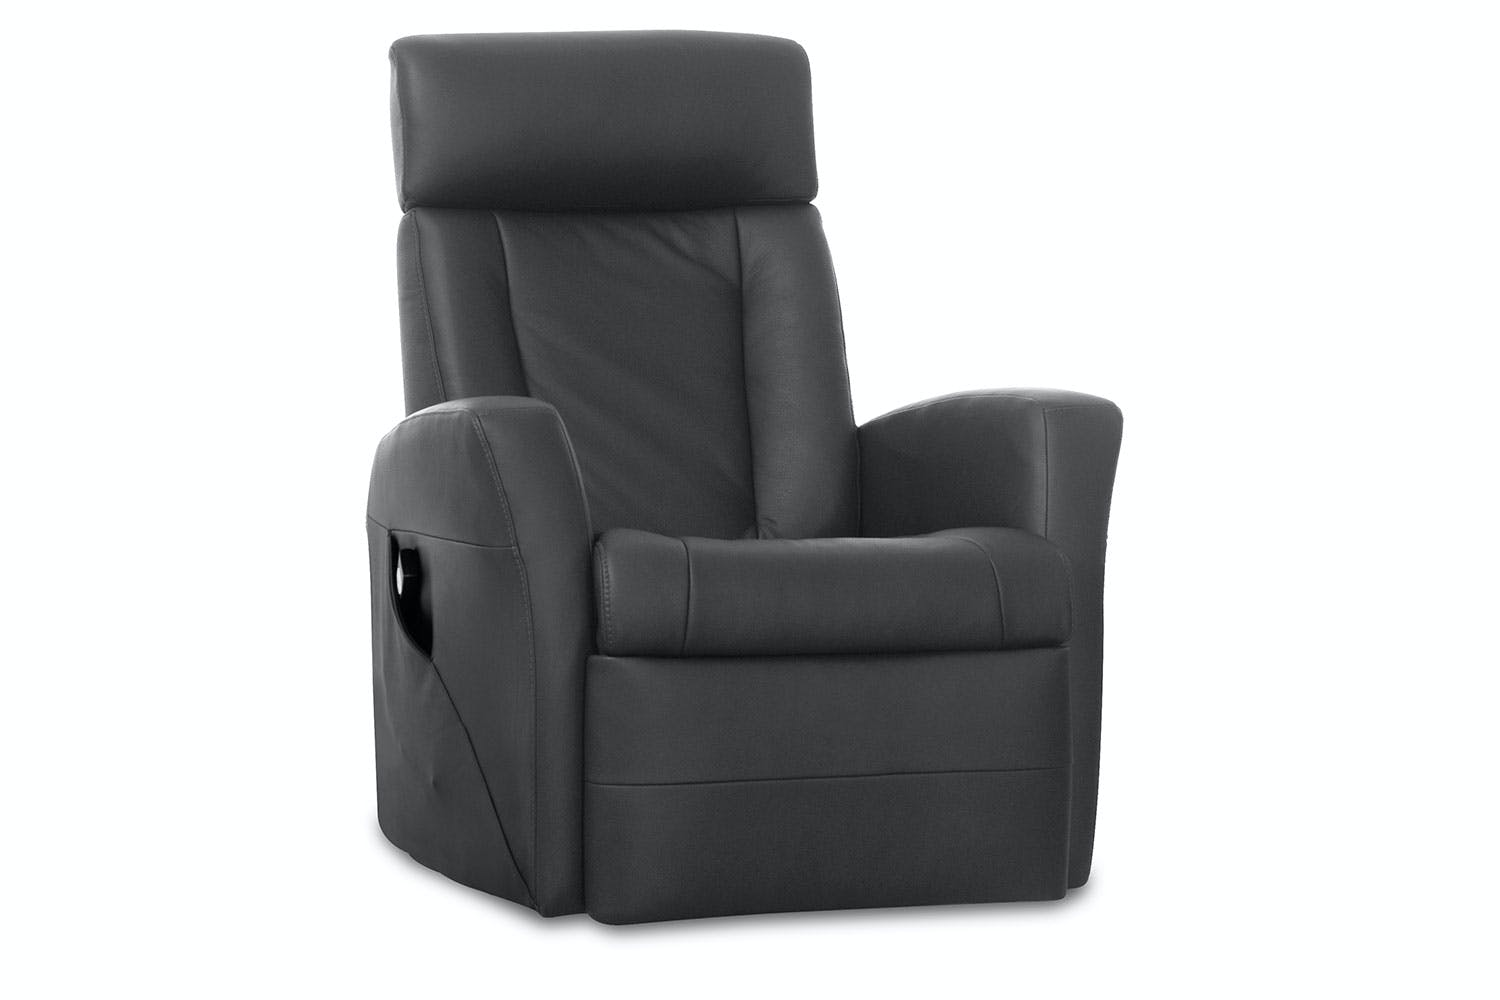 lotus leather multi function recliner chair standard trend img